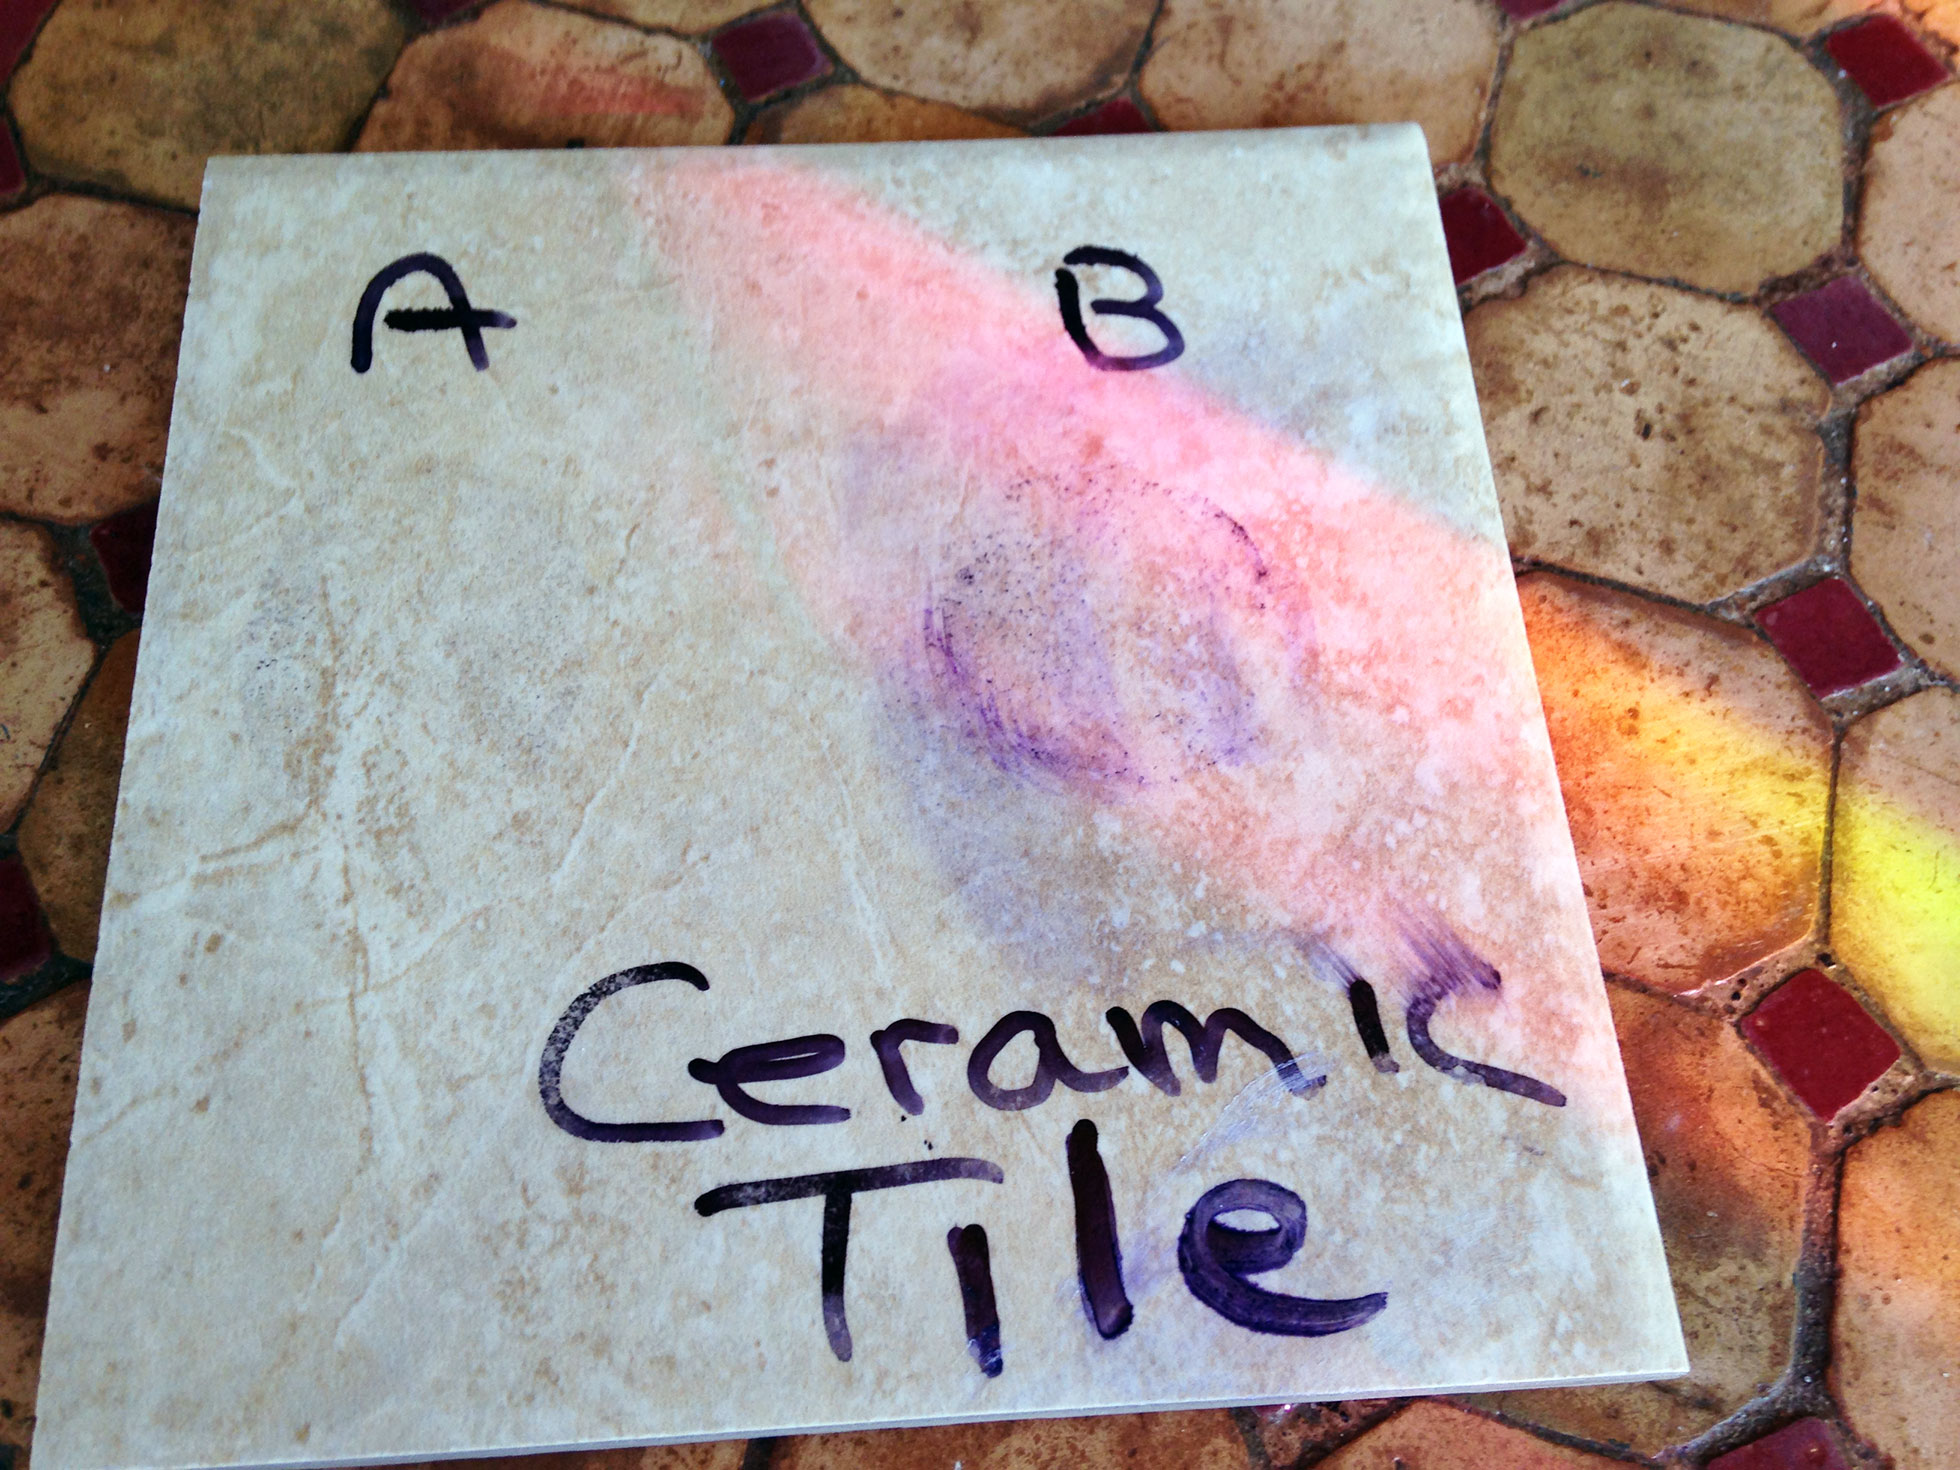 Ceramic tile floor cleaner DIY test after